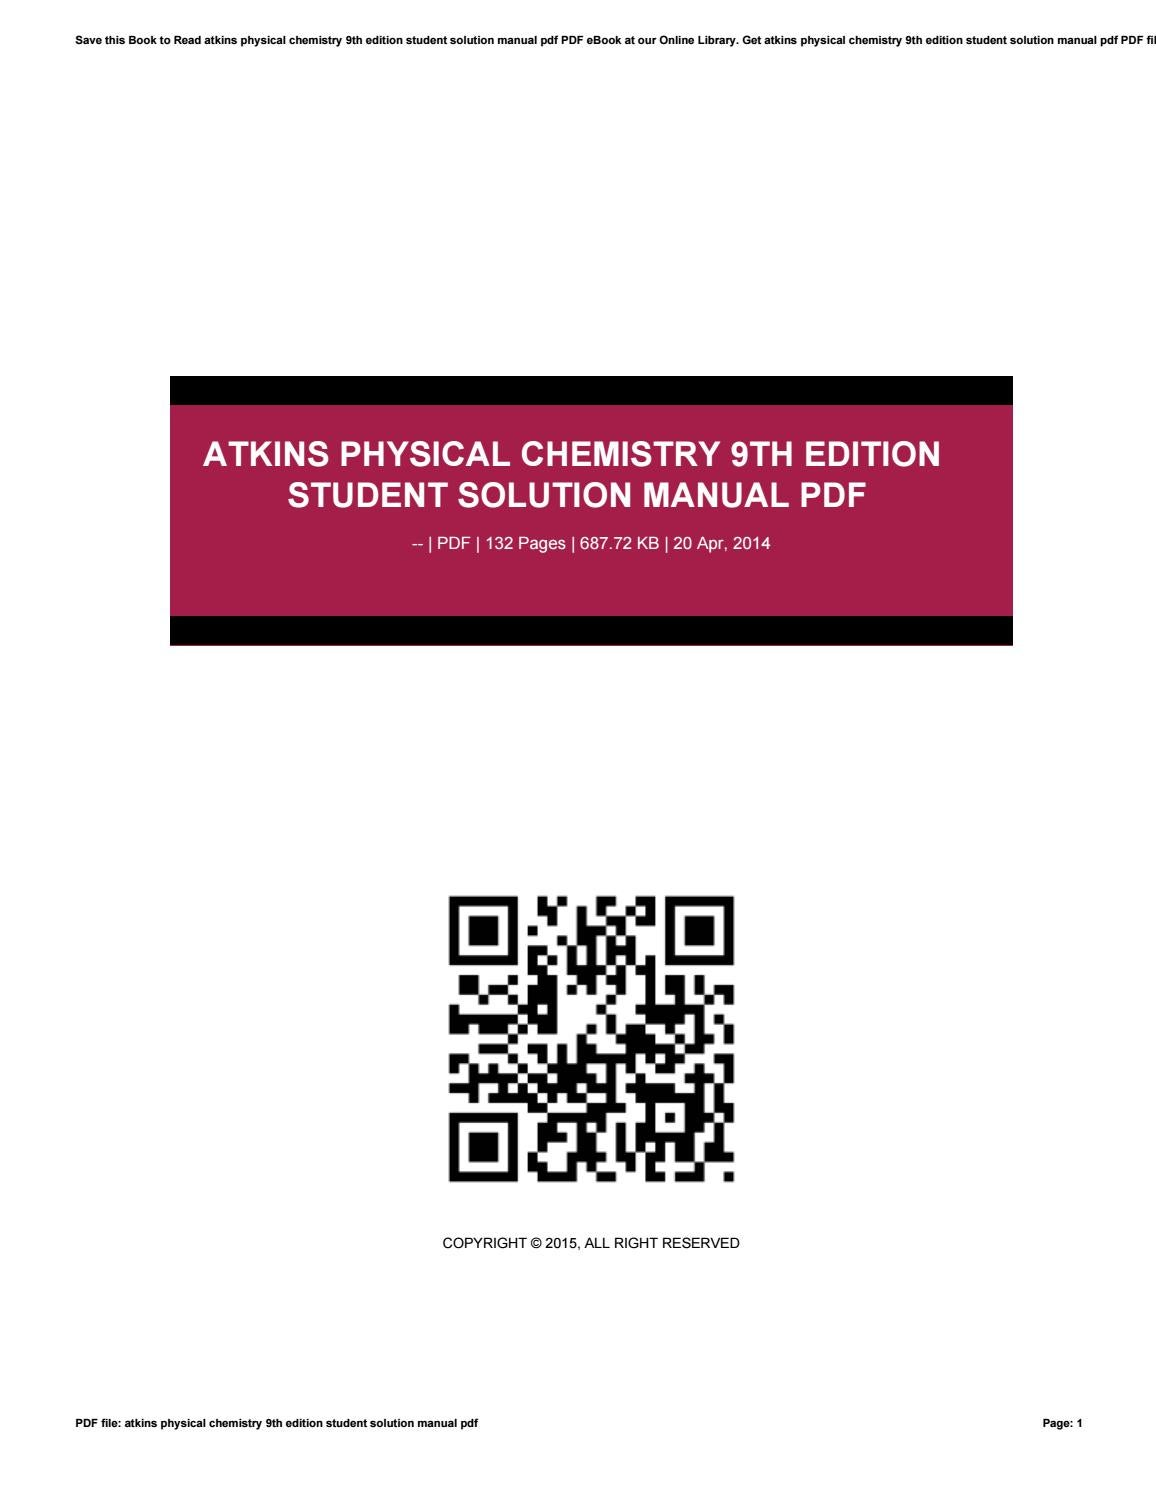 Atkins physical chemistry 9th edition student solution manual pdf by  preseven - issuu